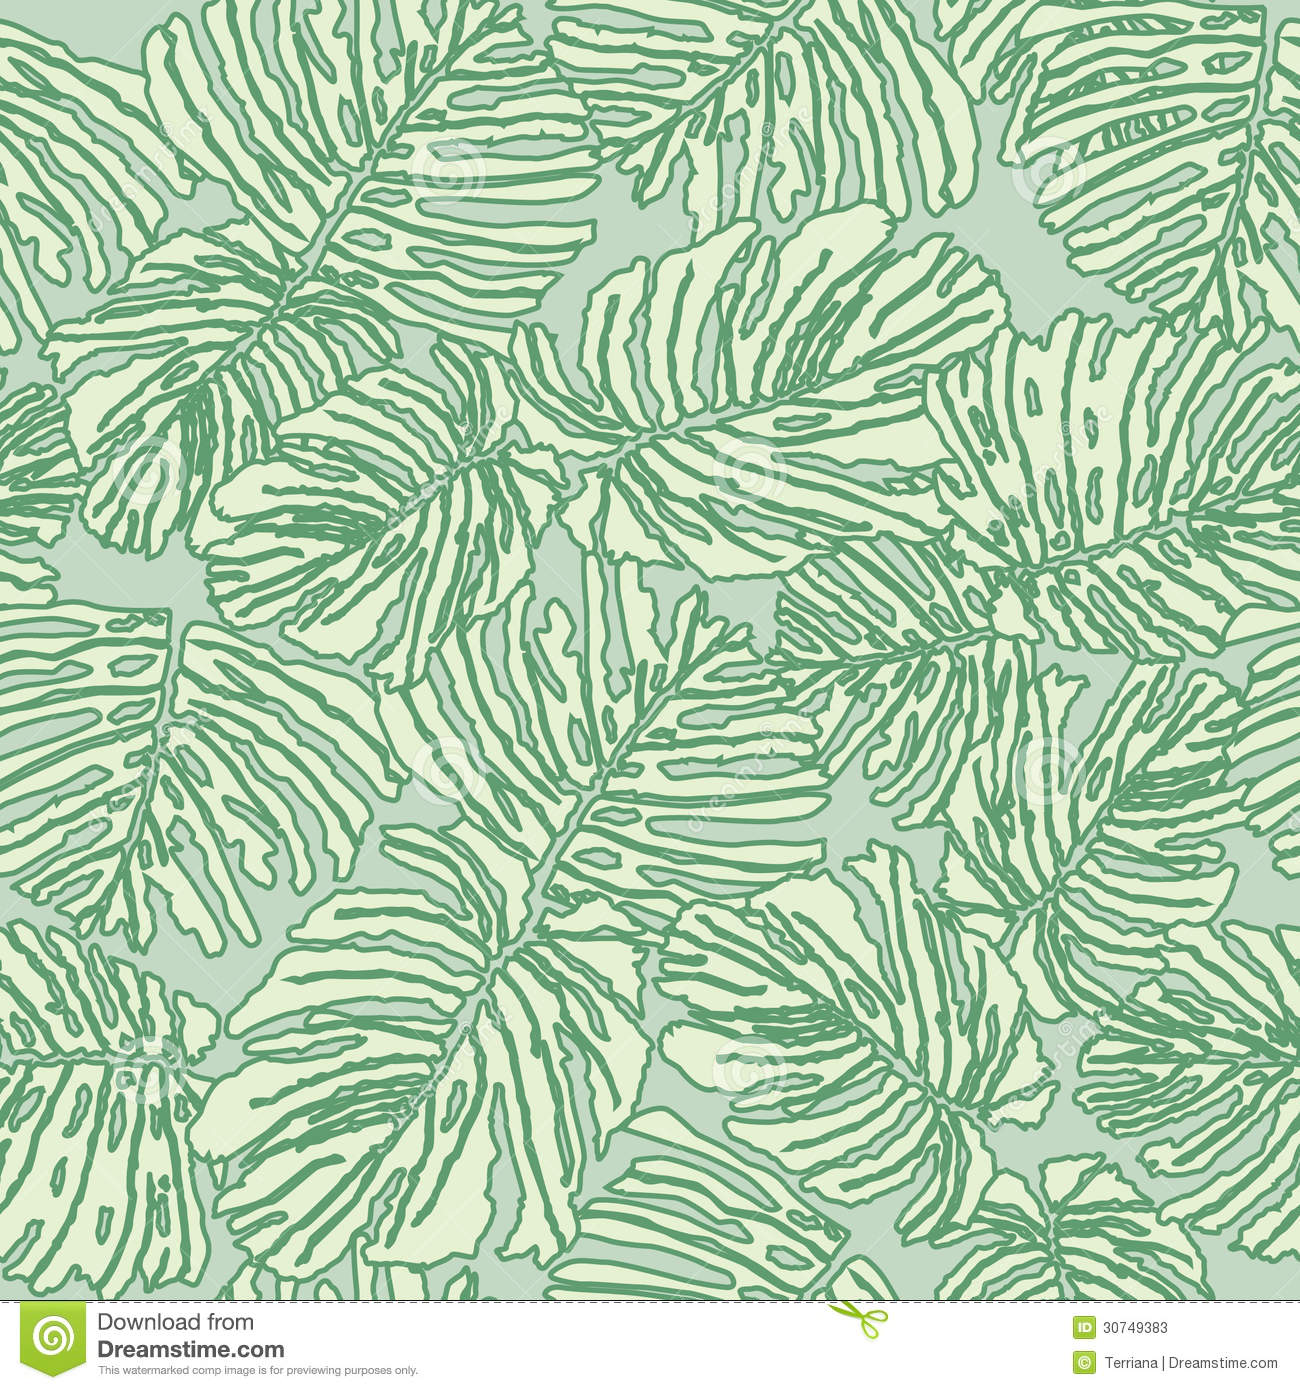 Abstract Floral Seamless Texture With Fern Leaves Stock ...